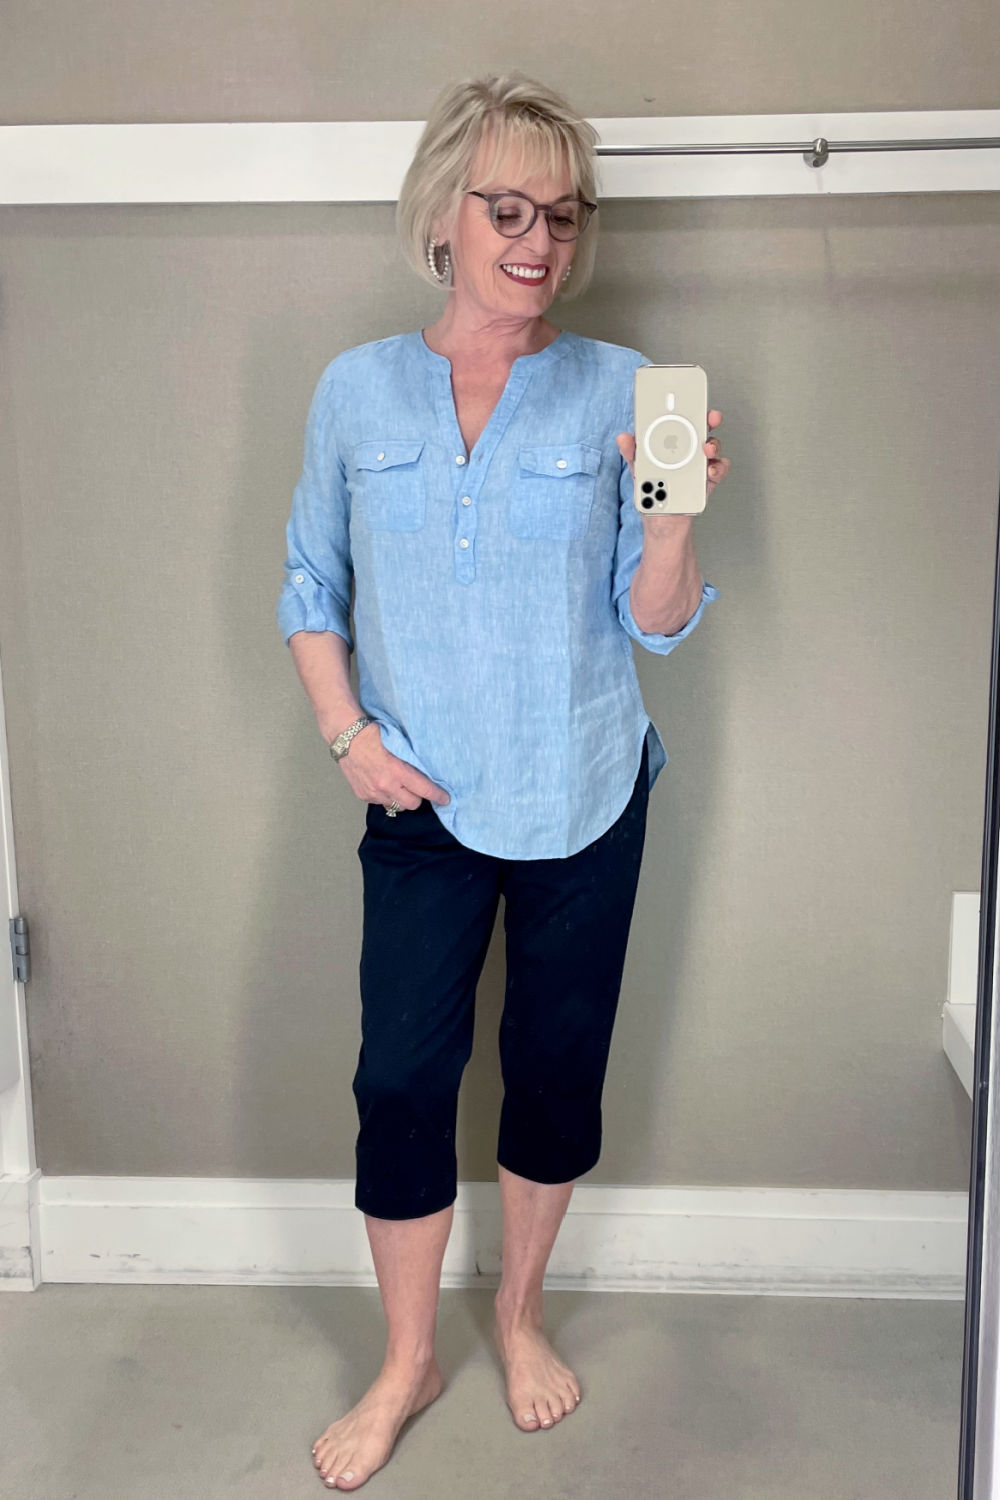 60 year old woman wearing blue shirt and cropped pants in dressing room